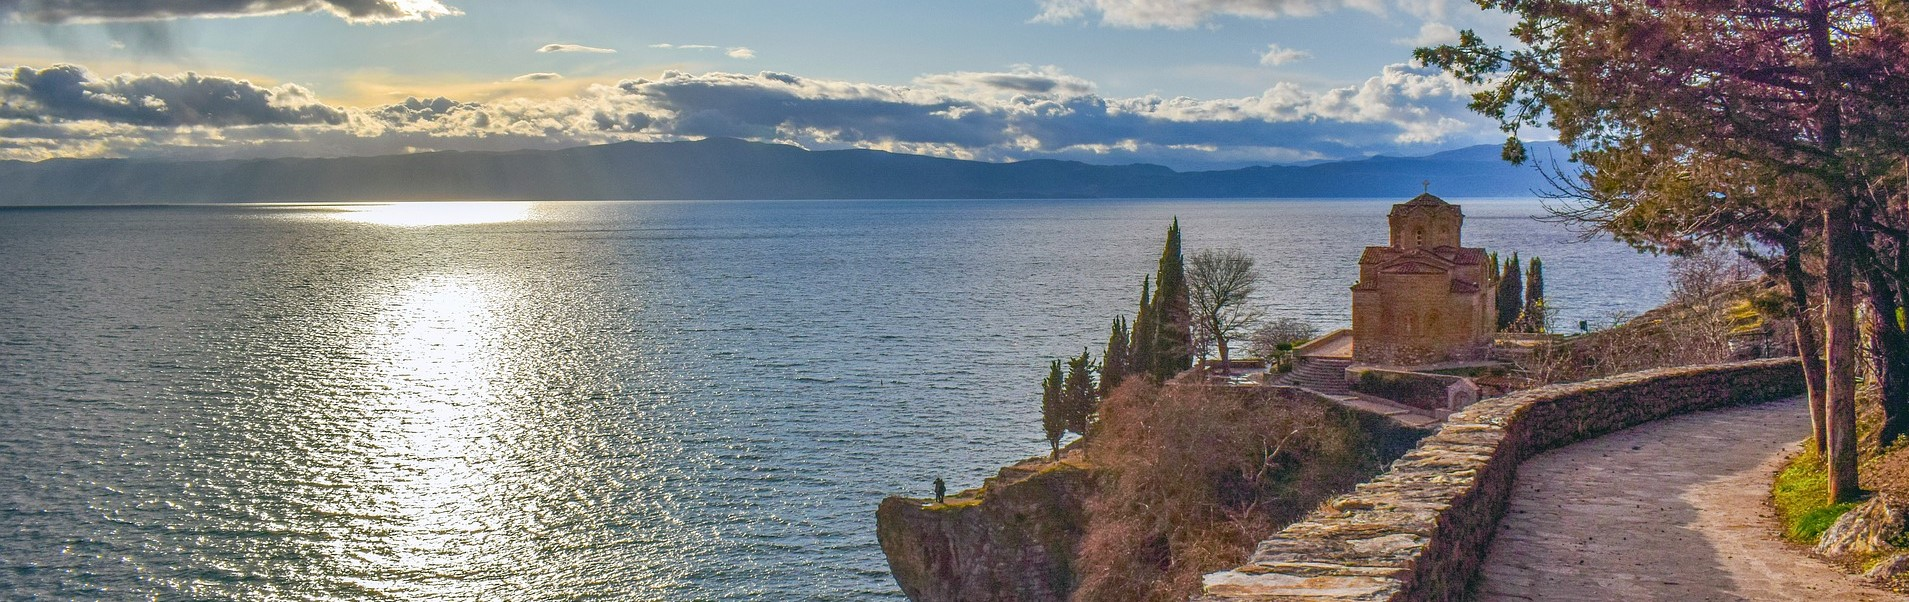 North Macedonia: A Multi-Active Tour 2020